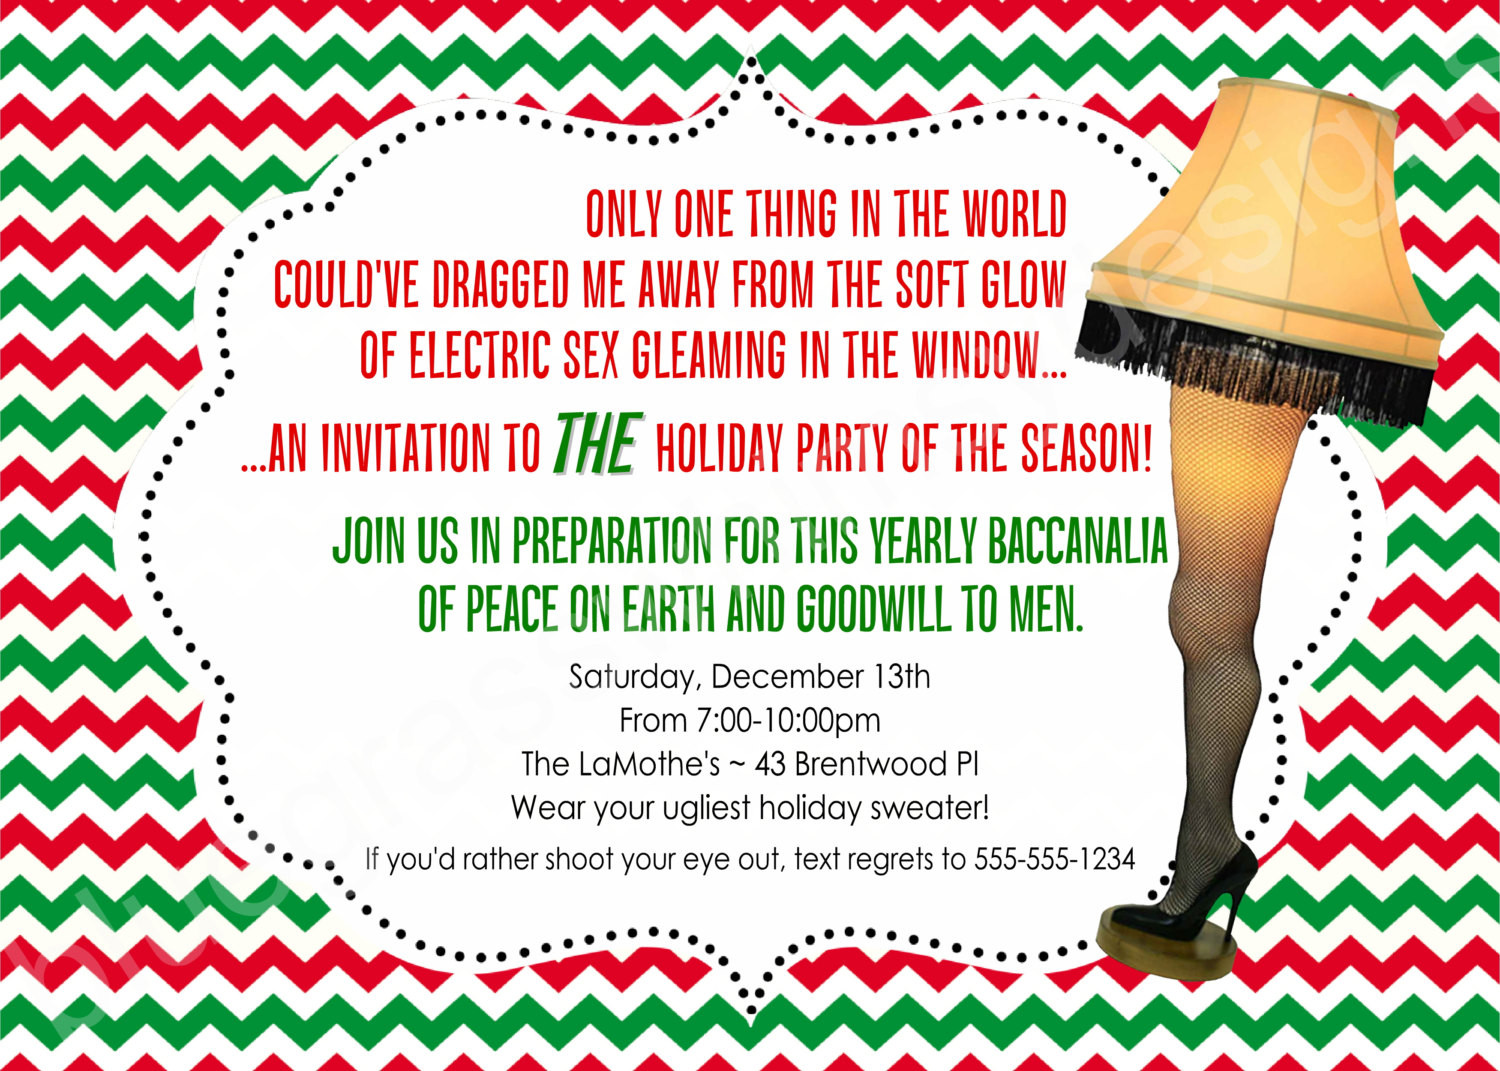 Christmas Story Quotes  A Christmas Story Leg Lamp Printable Holiday Party Invitation